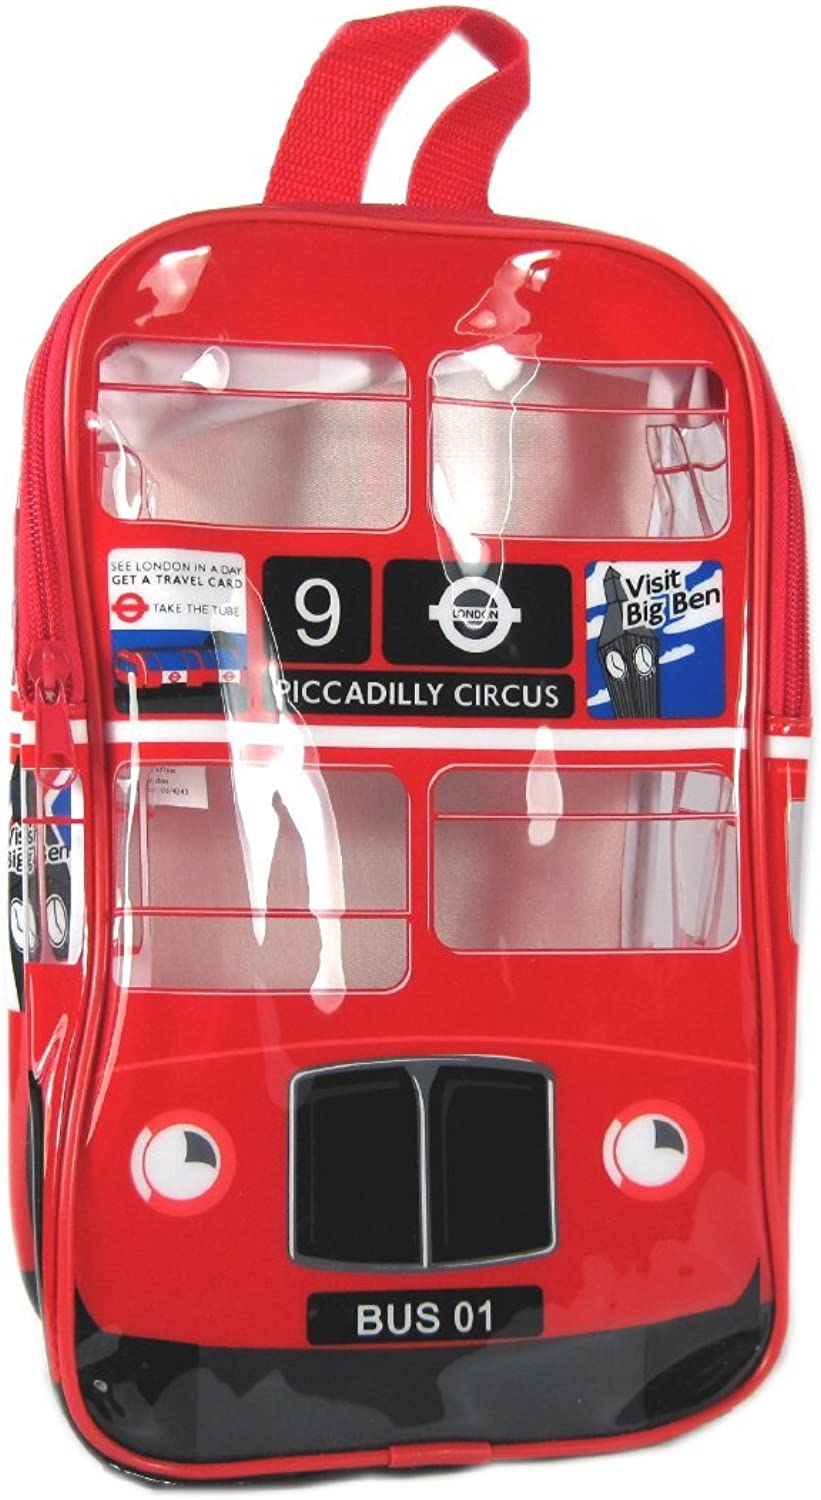 London Bus Back Pack  London Red Double Decker Bus Kids Book Bag, Transport for London Collection  1201A